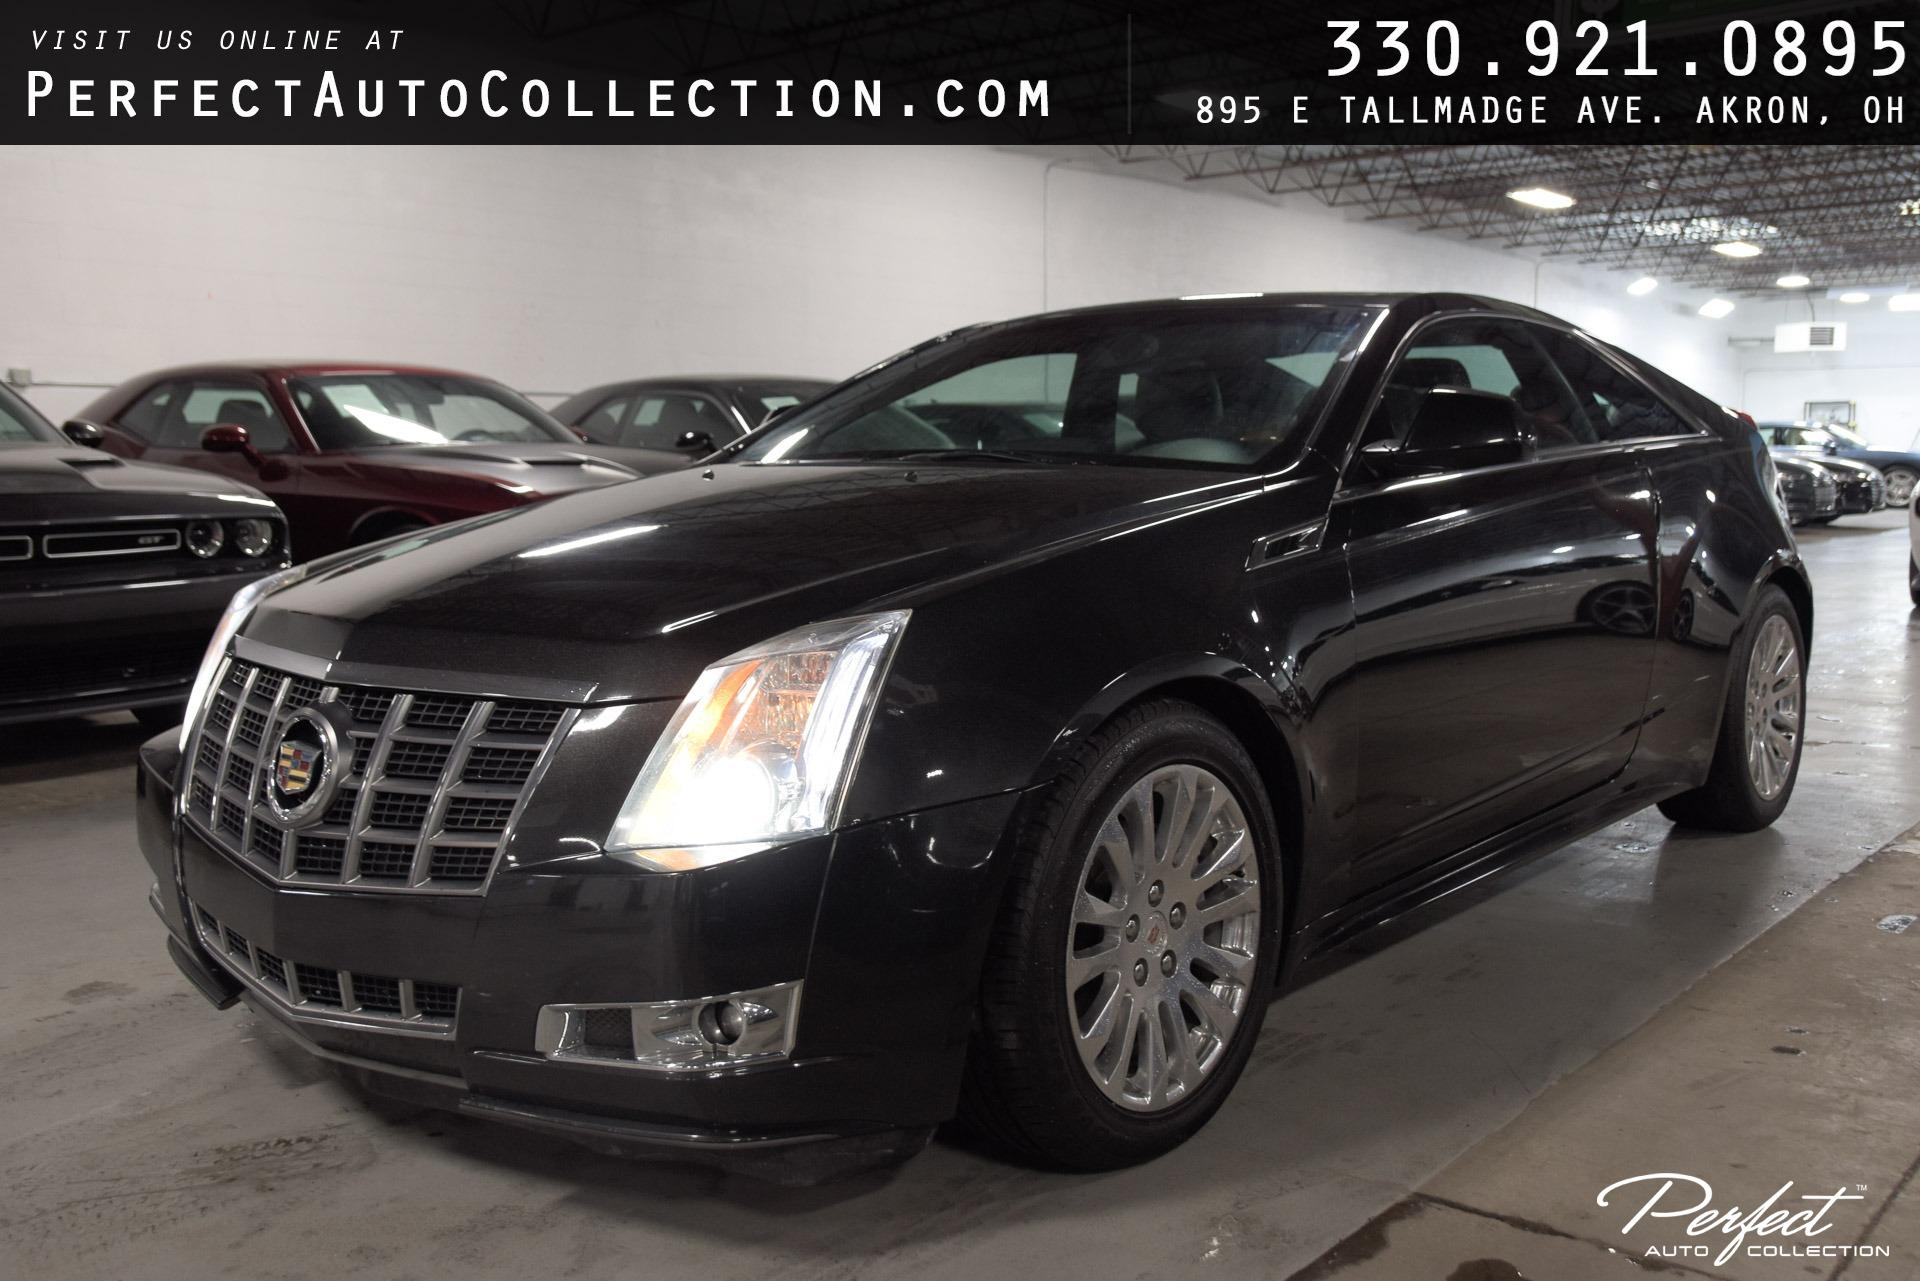 Used 2012 Cadillac CTS 3.6L Premium for sale $11,895 at Perfect Auto Collection in Akron OH 44310 1